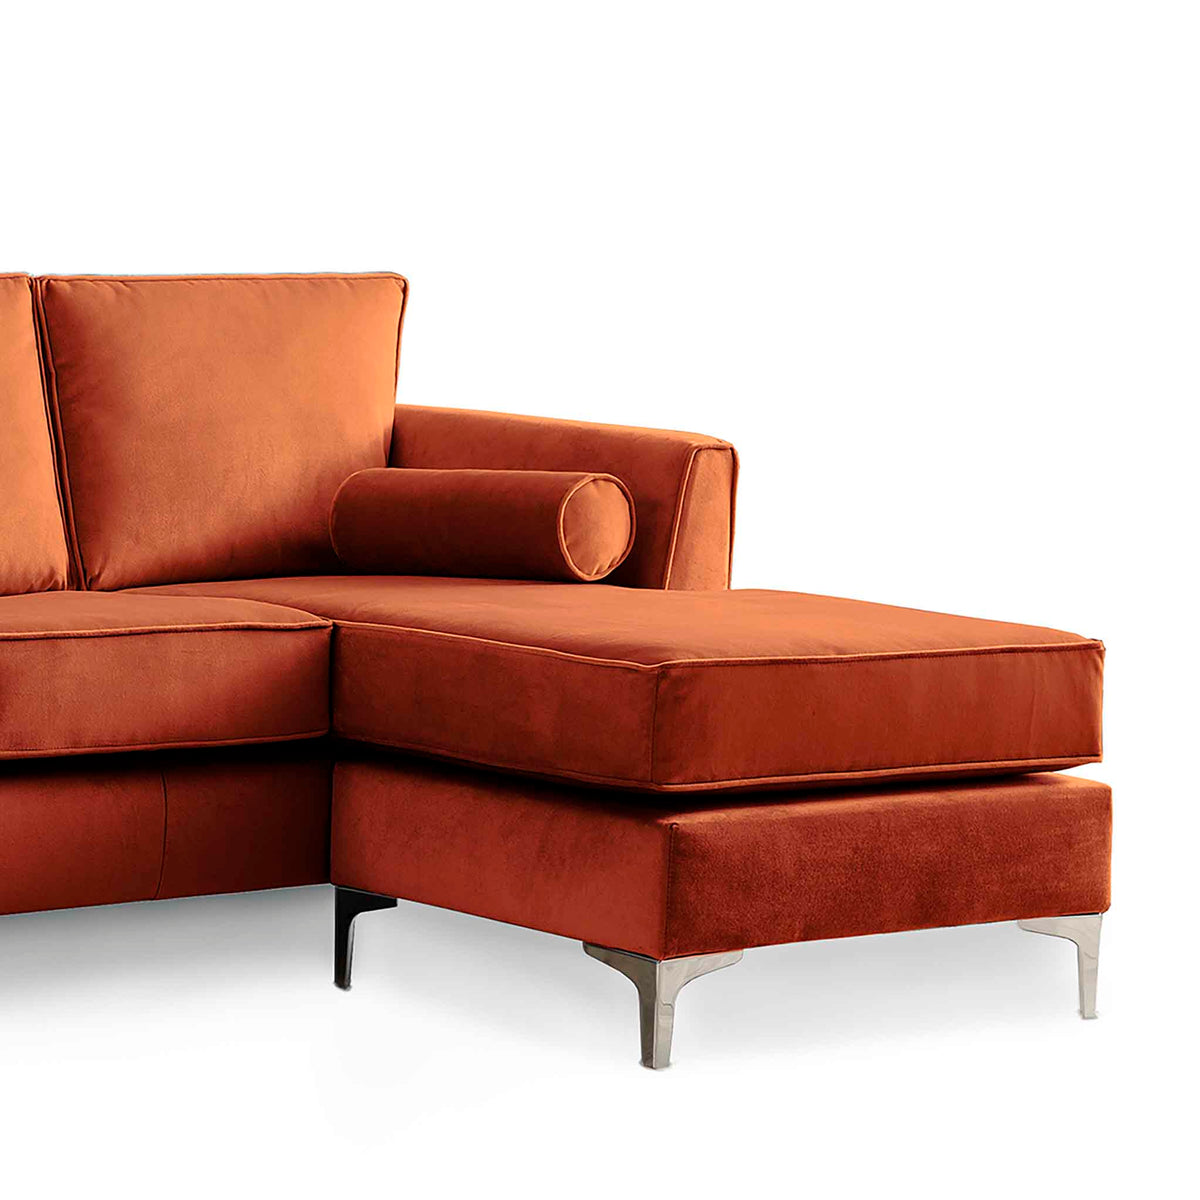 Ikon Reversible Apricot Chaise Corner Sofa - Close up of chaise section